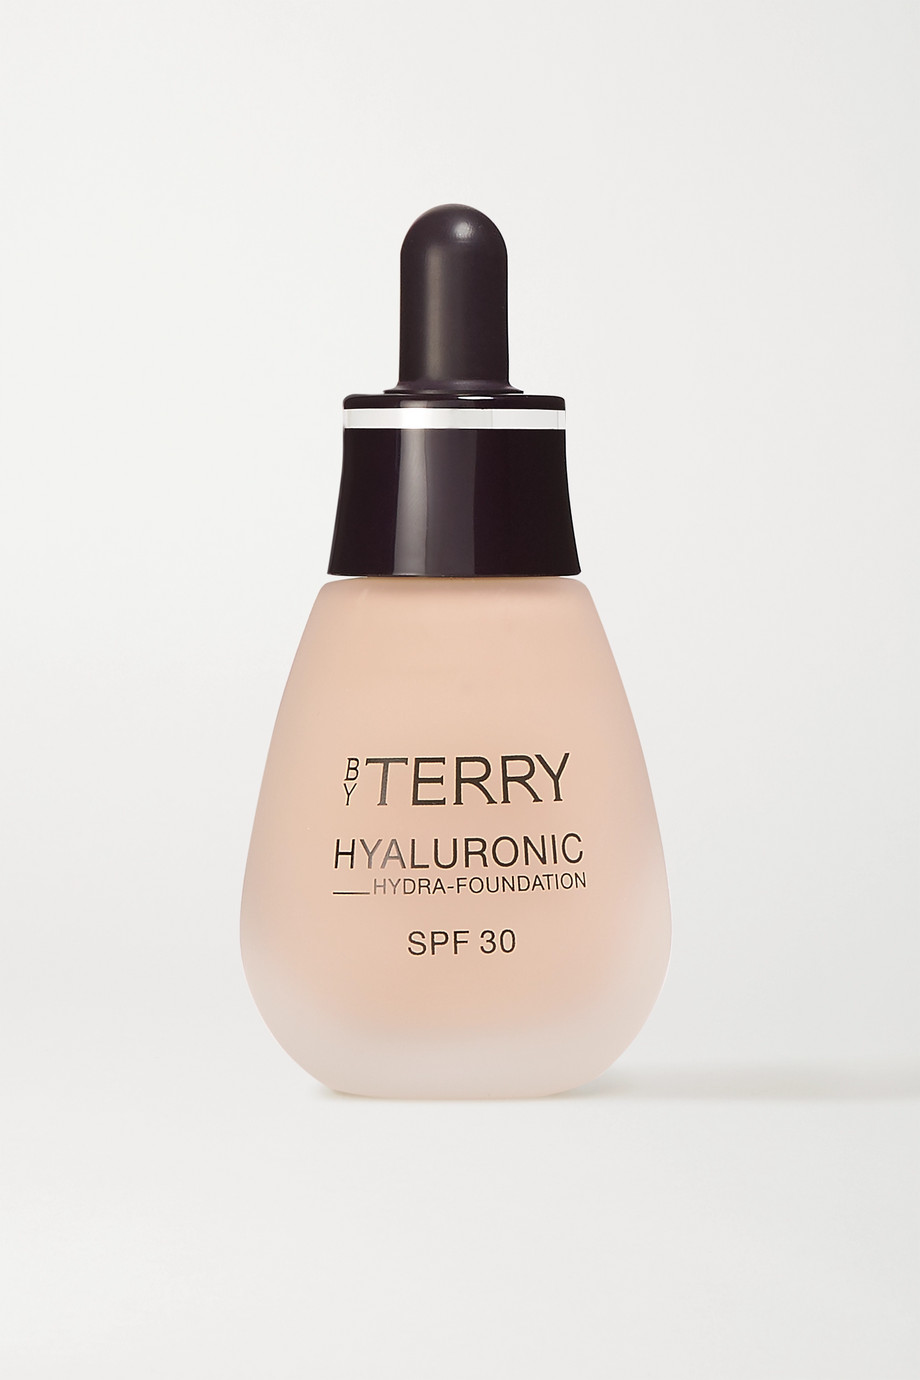 BY TERRY Hyaluronic Hydra-Foundation SPF30 - 300N